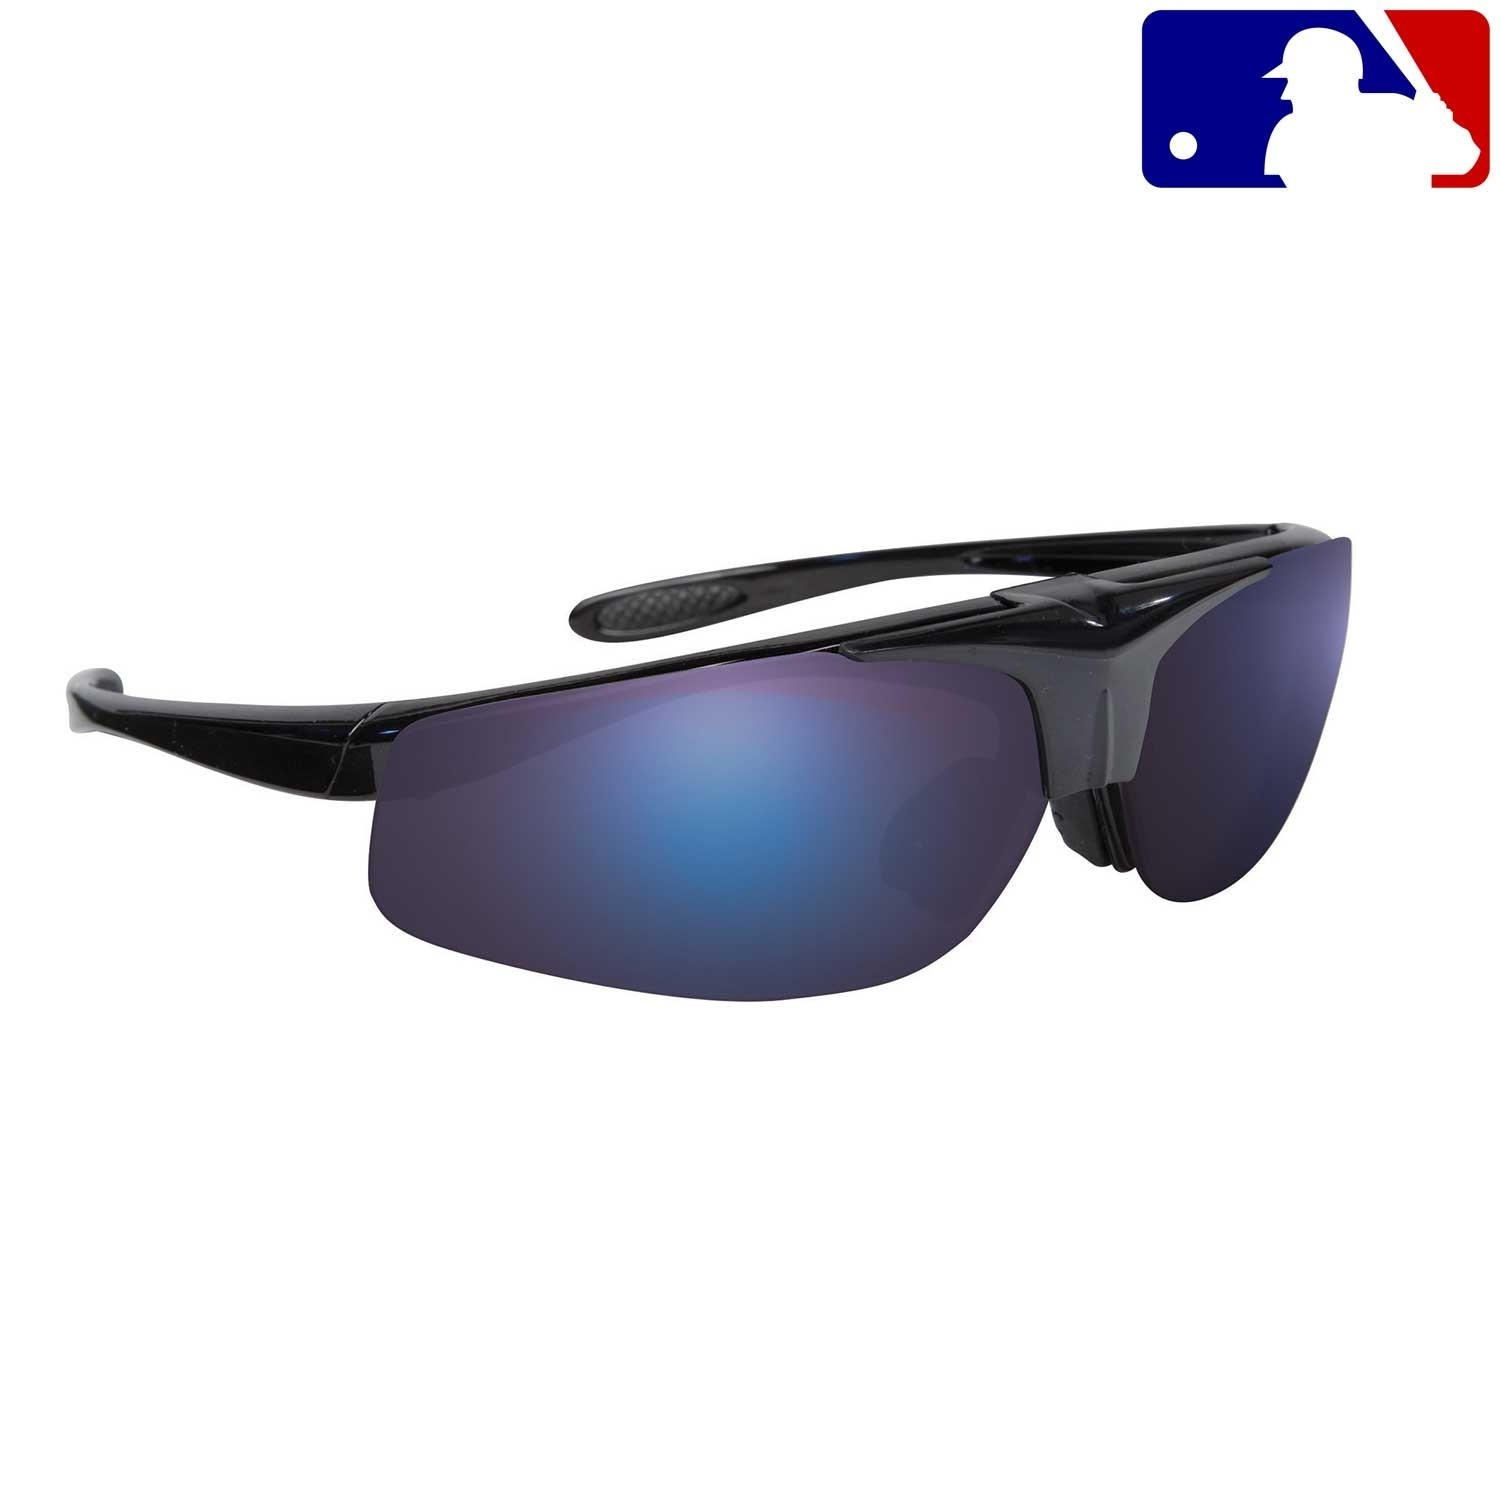 f4c8bd5a354d Franklin MLB Deluxe Flip-Up Sunglasses - Forelle American Sports Equipment